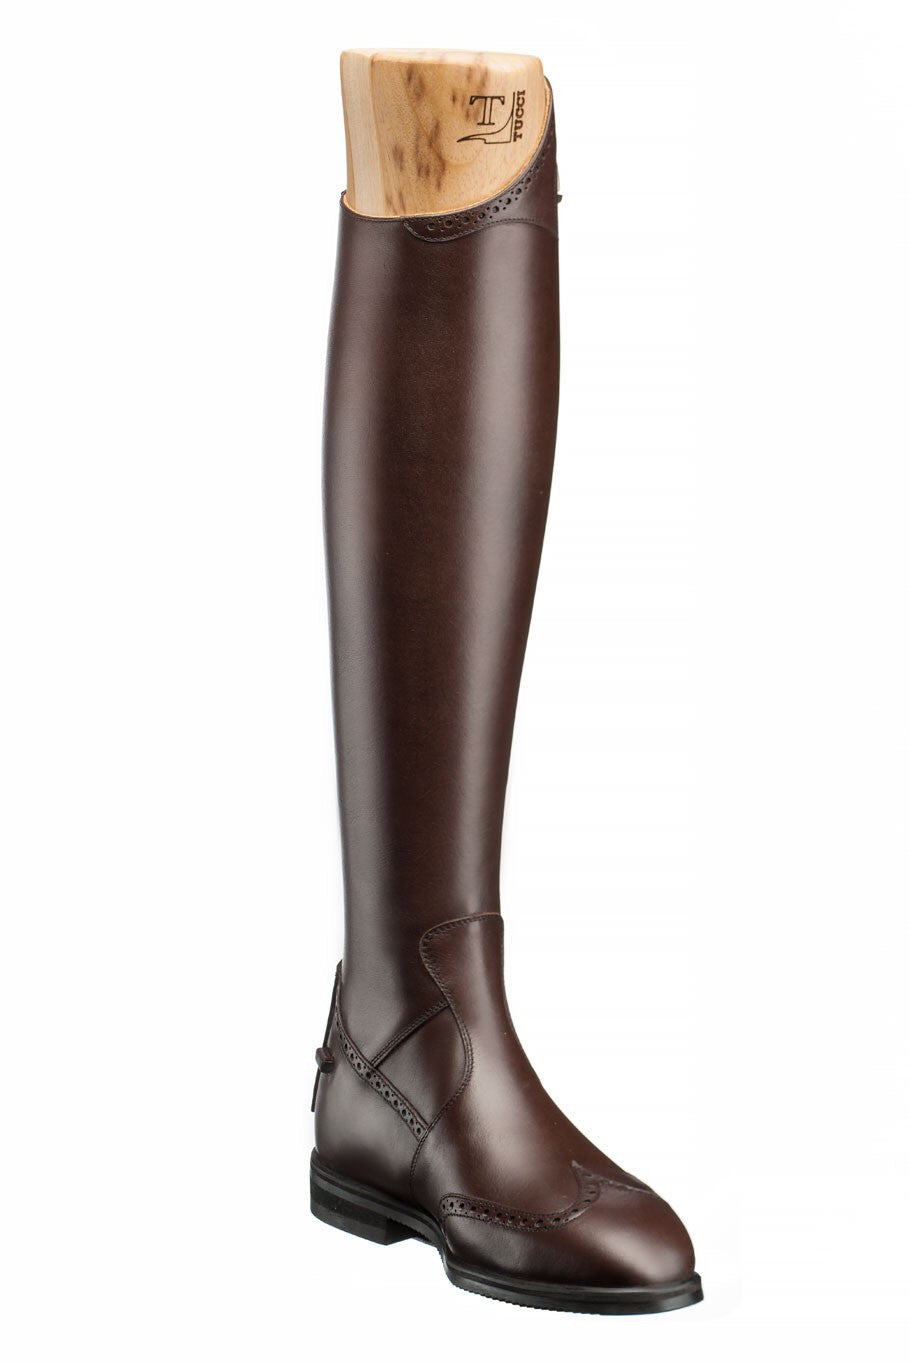 Tucci Marilyn Tall Fancy Dress Boot